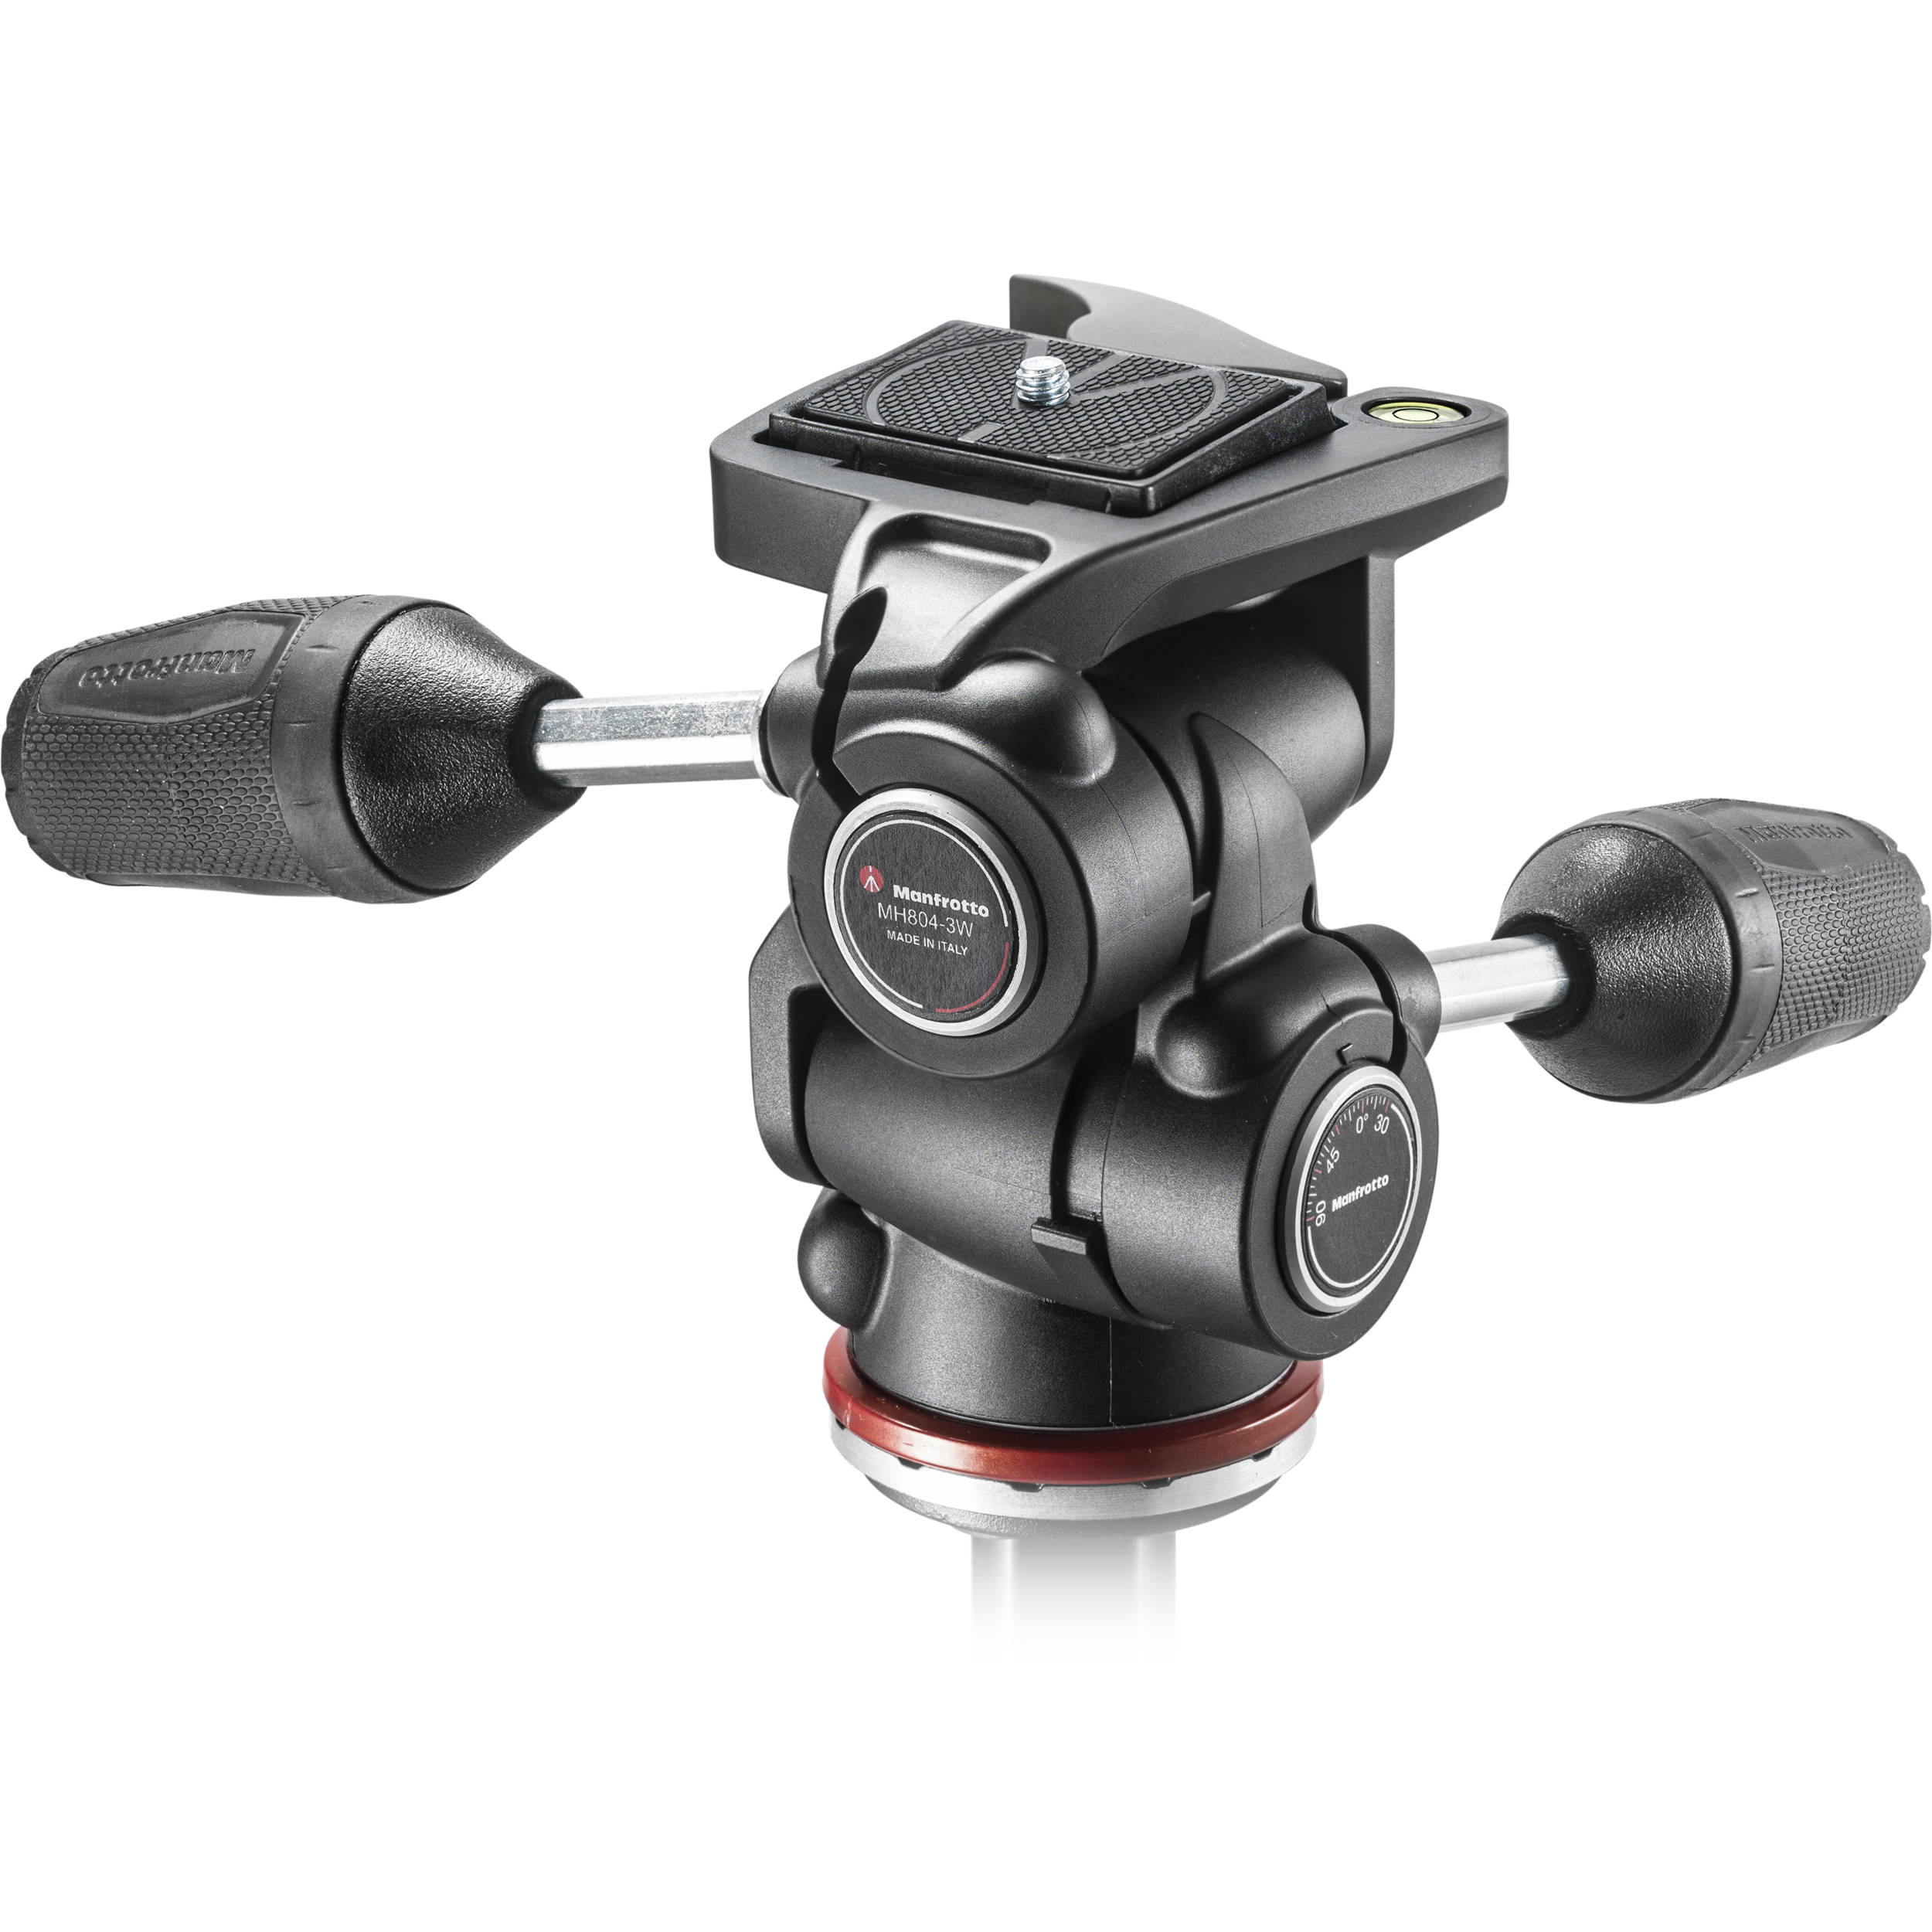 Manfrotto MH804 3-Way, Pan-and-Tilt Head with 200LT-PL